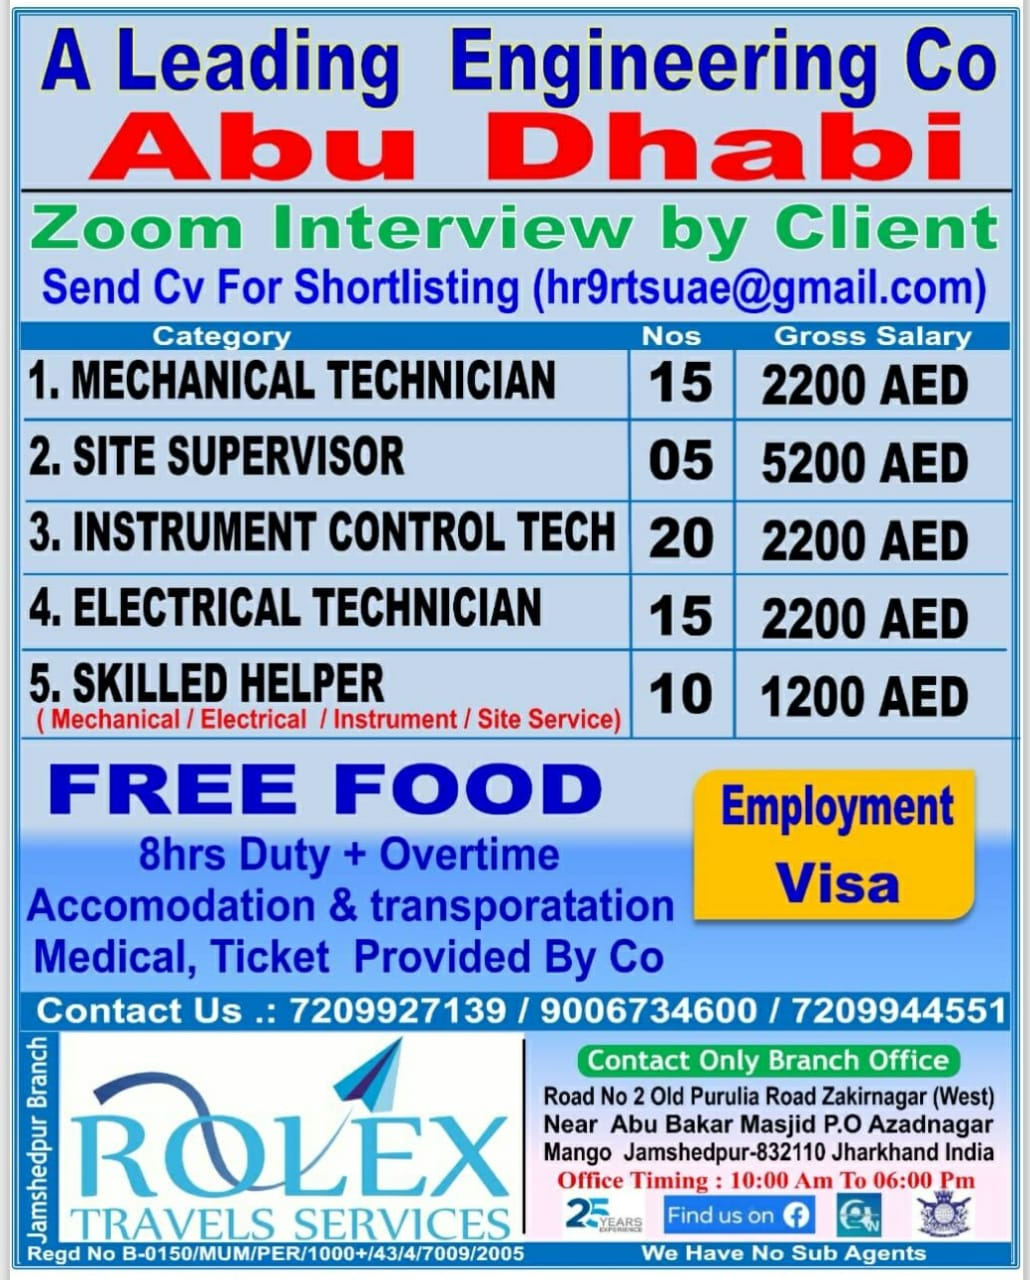 A LEADING ENGINEERING CO-ABU DHABI